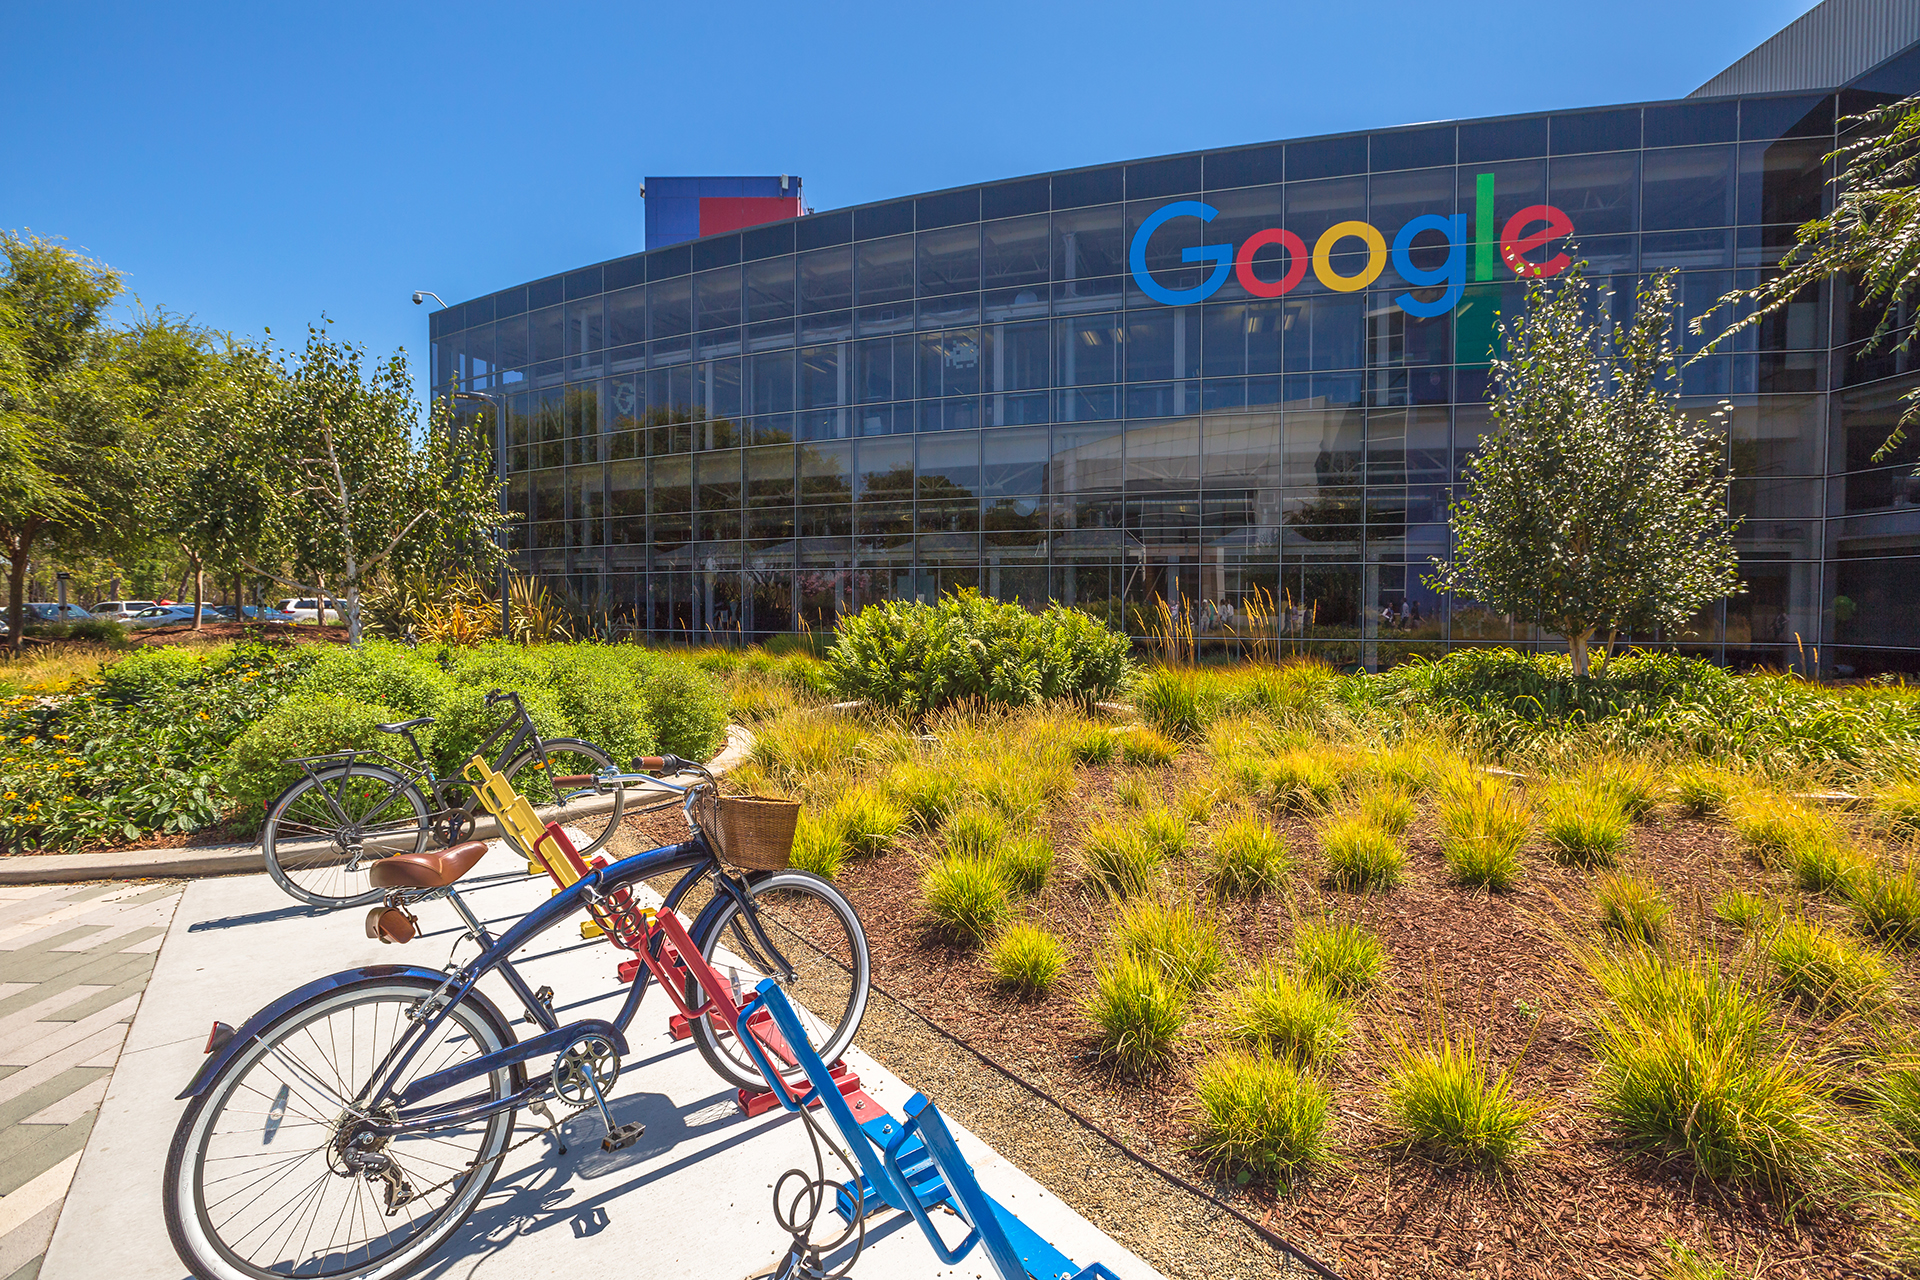 Working remotely at Google? Prepare to have your salary cut